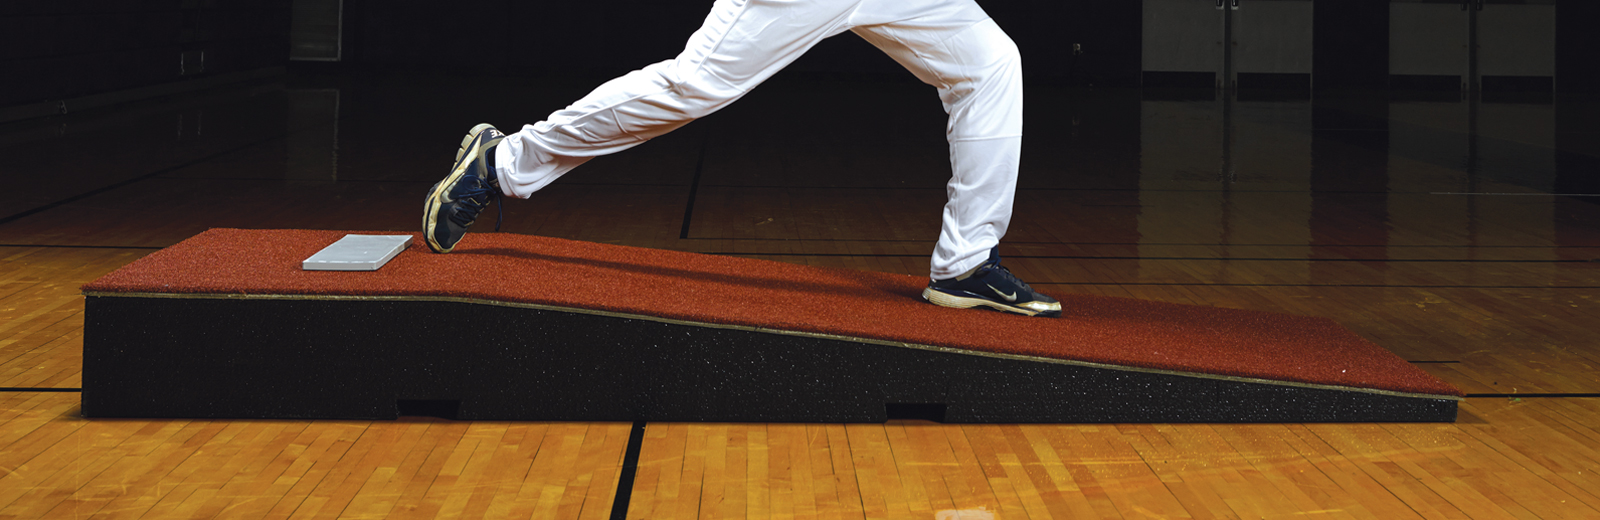 Portable Pitching Mounds for Baseball